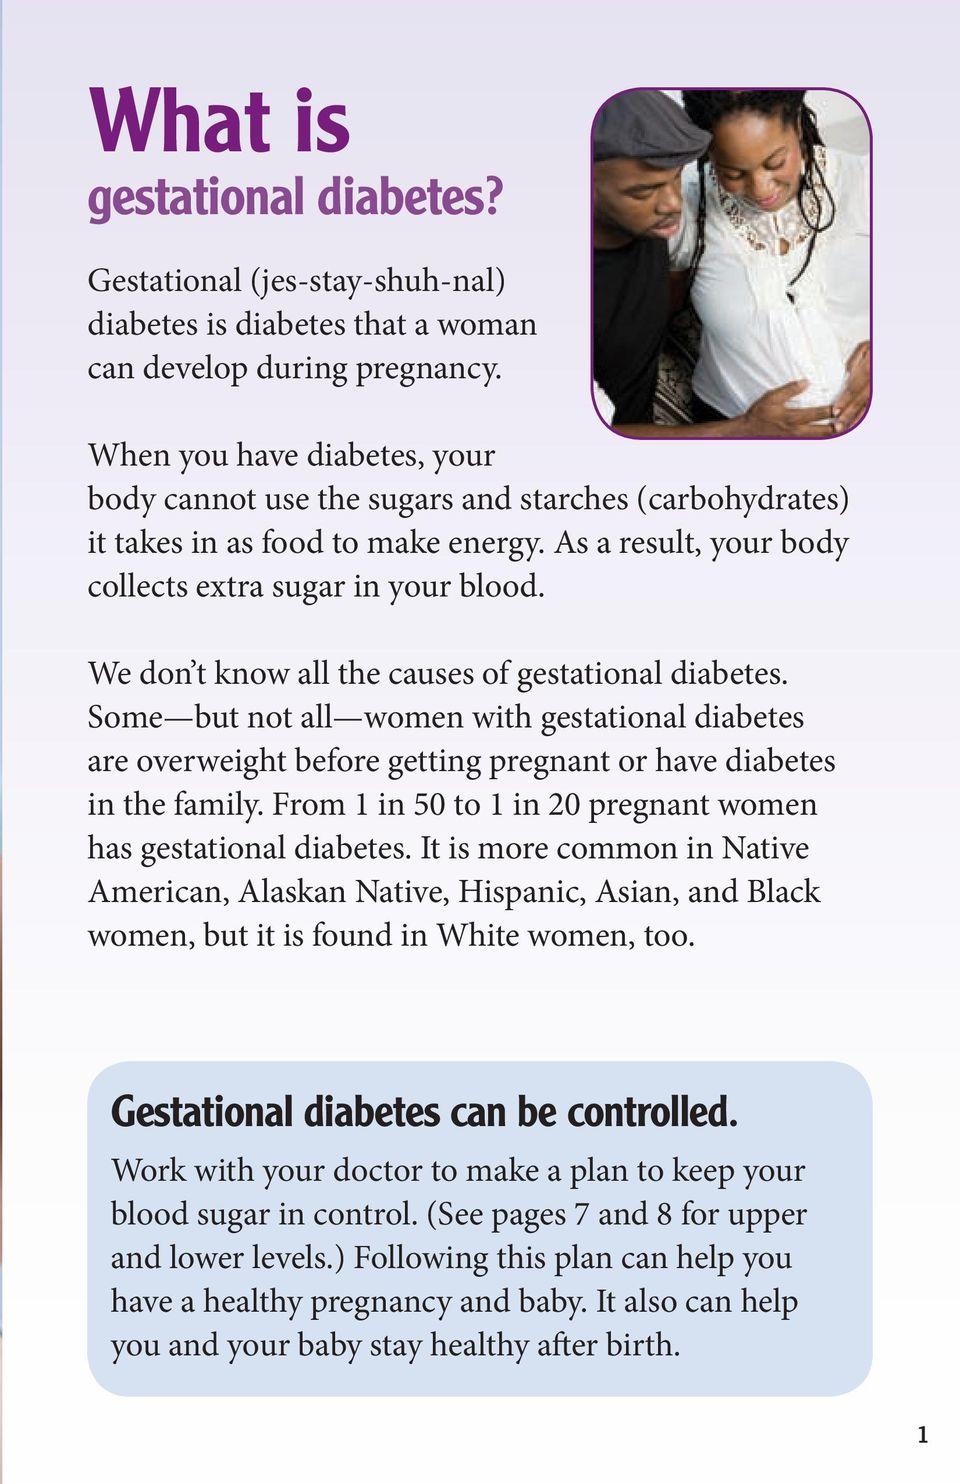 We dn t knw all the causes f gestatinal diabetes. Sme but nt all wmen with gestatinal diabetes are verweight befre getting pregnant r have diabetes in the family.